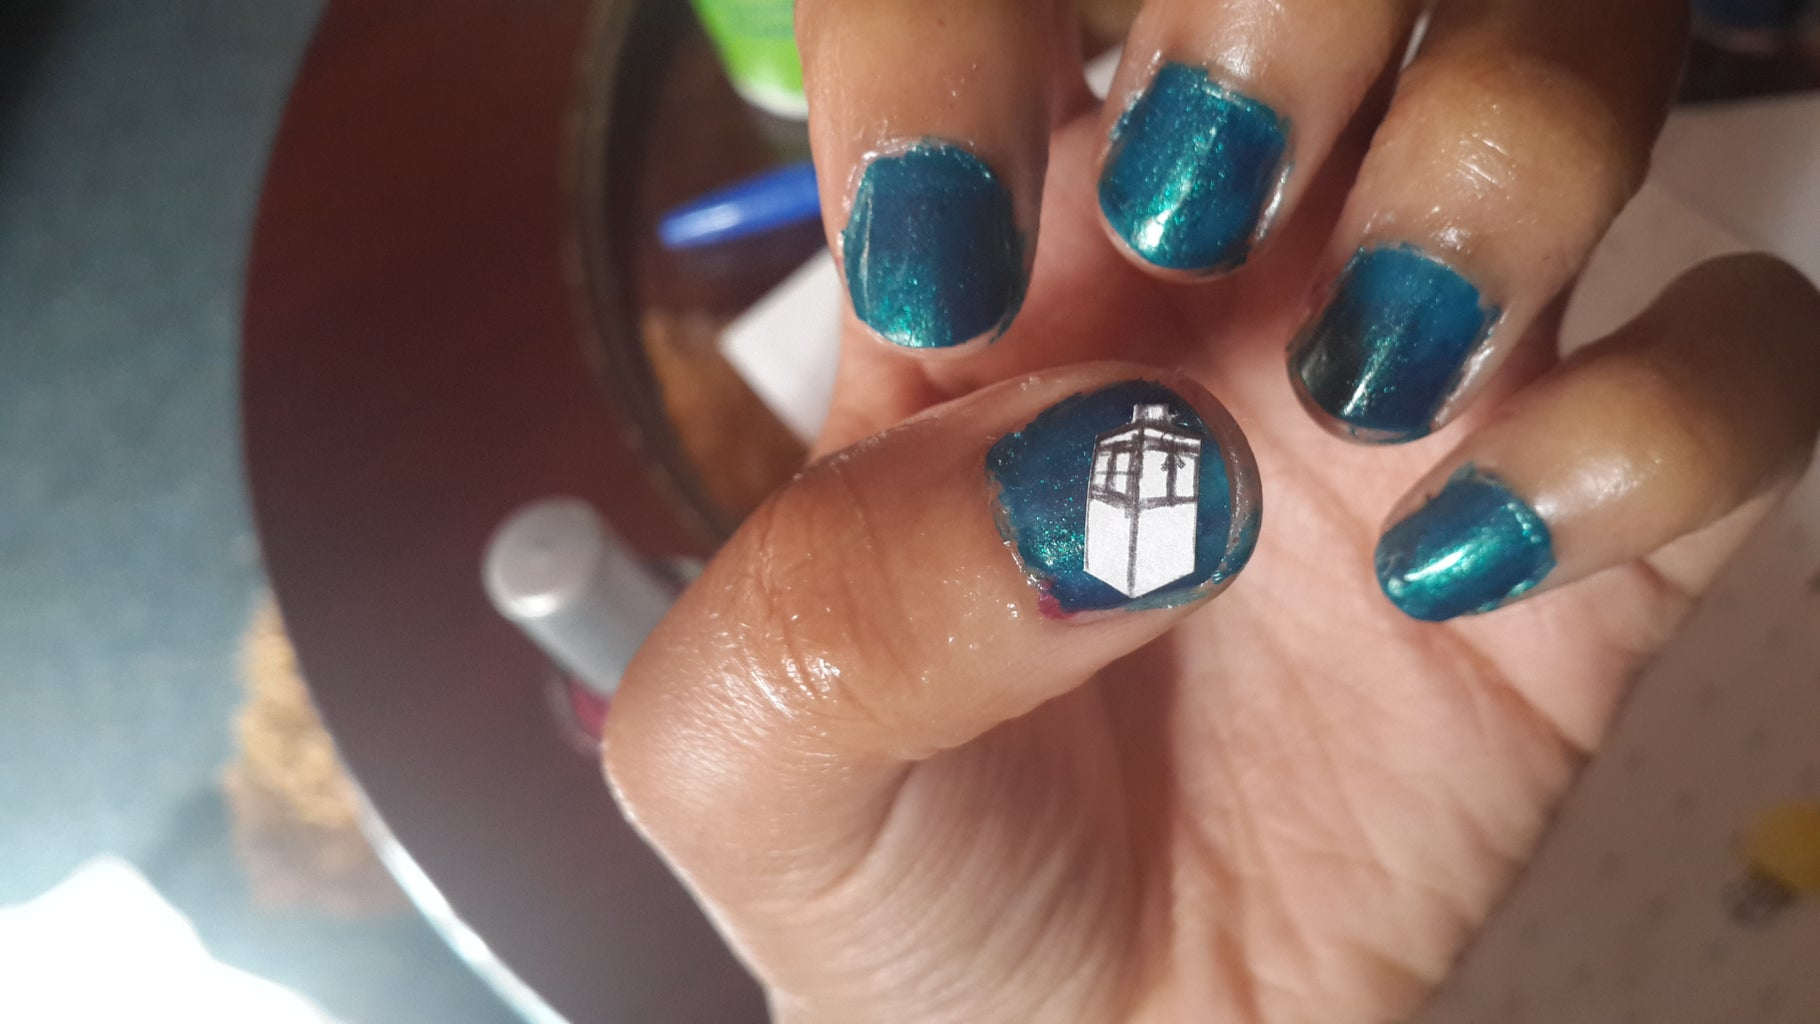 Cut Out Your Chosen Design and Stick It on the Nail